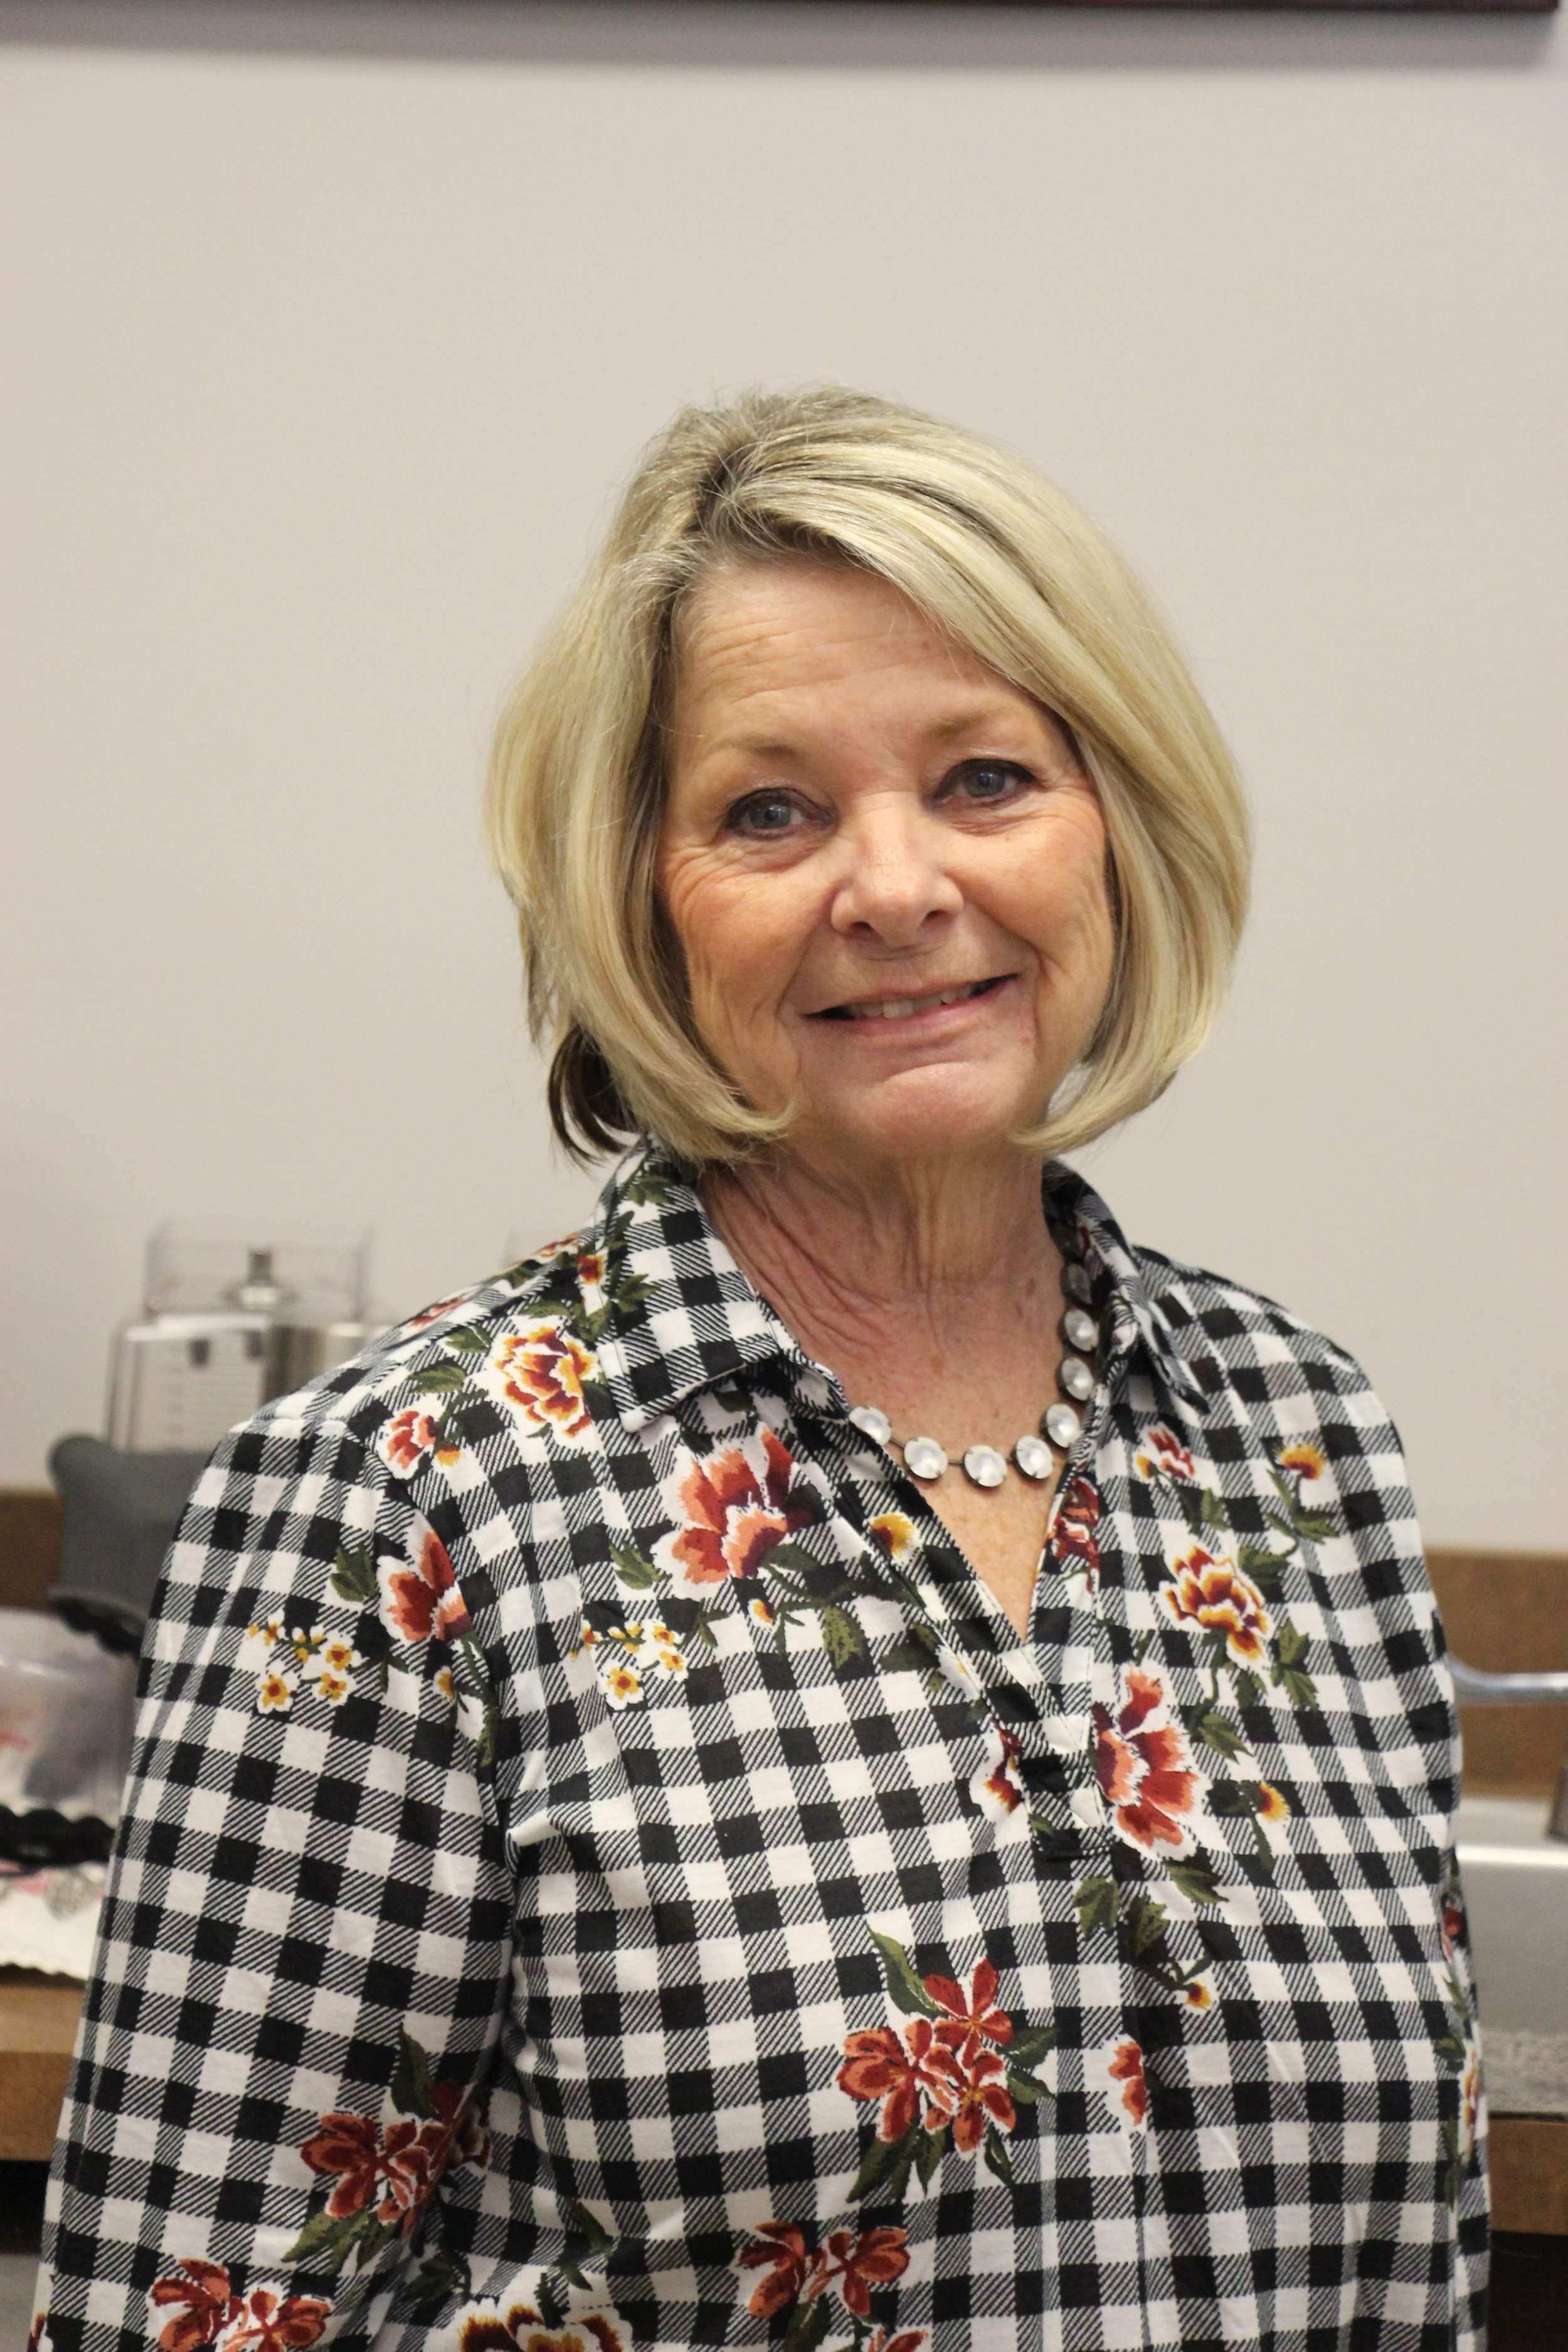 Rita Philpott - Area of Service: Gathering Grounds, baristaWhen did you begin service in the CLC? When it opened in 2016.Why did you want to be a part of the CLC ministry? I had previously been involved in the coffee ministry prior to the CLC opening and love being able to serve our community and contribute to the family atmosphere at Bonsack.What has been a highlight of your time in the CLC? Volunteering at the Gathering Grounds is fun, sometimes hard work, but most of all rewarding. I've been so excited God has led me to this opportunity where I meet new people, get to know members better and enjoy a great cup of coffee! It's great to share with visitors that the CLC is for the community. They are in awe. I've seen visitors become members because of the family atmosphere Bonsack offers.Are there any other thoughts that you would like to share? Gathering Grounds is also a ministry to those who live in third world countries to improve their way of life by using Fair Trade practice. By using Land of a Thousand Hills coffee, we support people and missions in Rwanda, Brazil, and the Caribbean. It is a way for our people to impact the world by doing something that they do every day, drinking coffee.